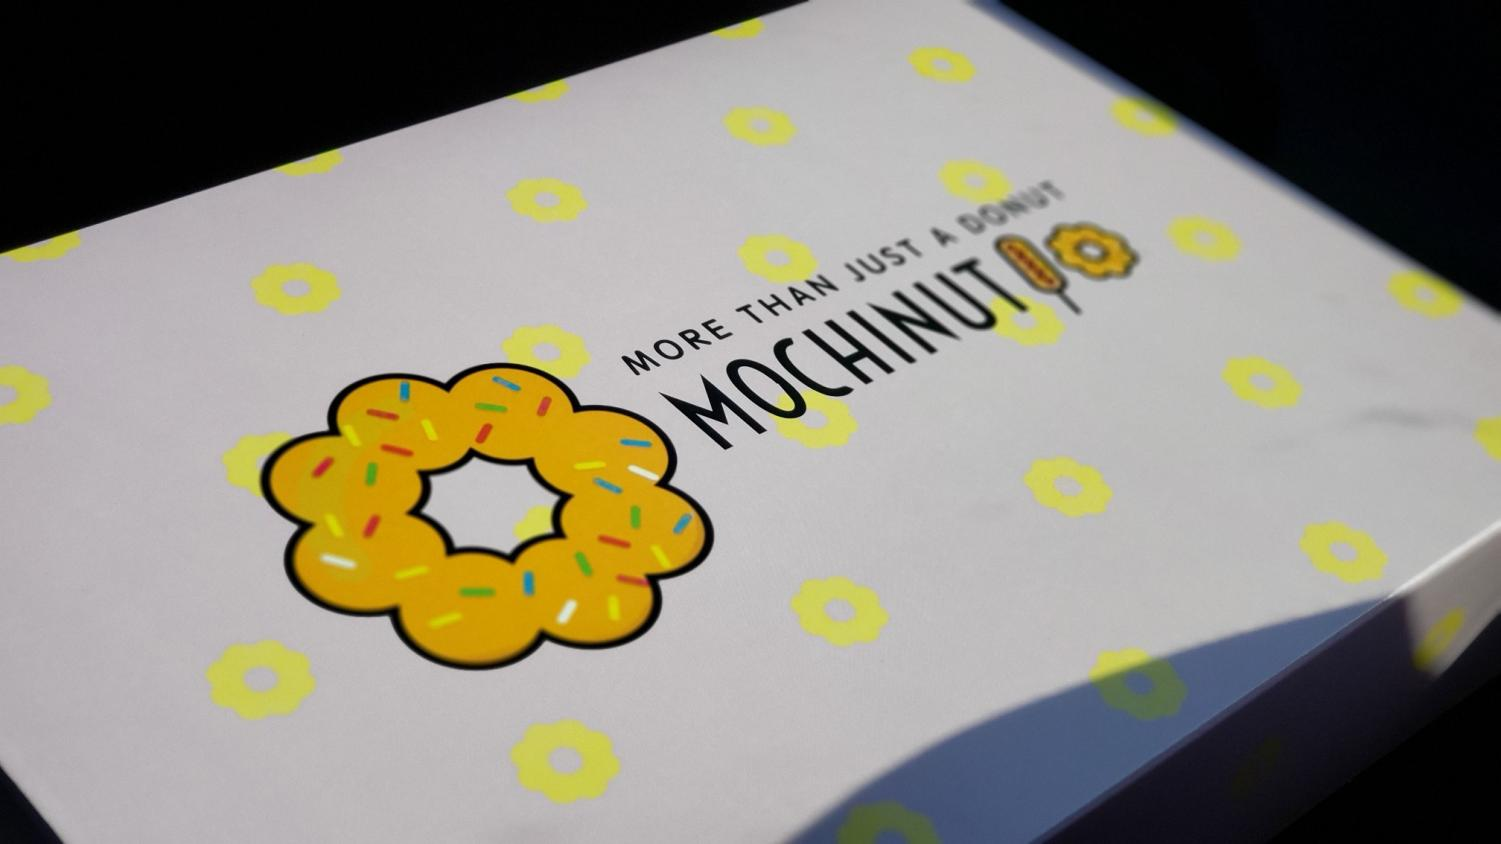 Mochi+Donuts%3A+Are+They+Worth+the+Hype%3F